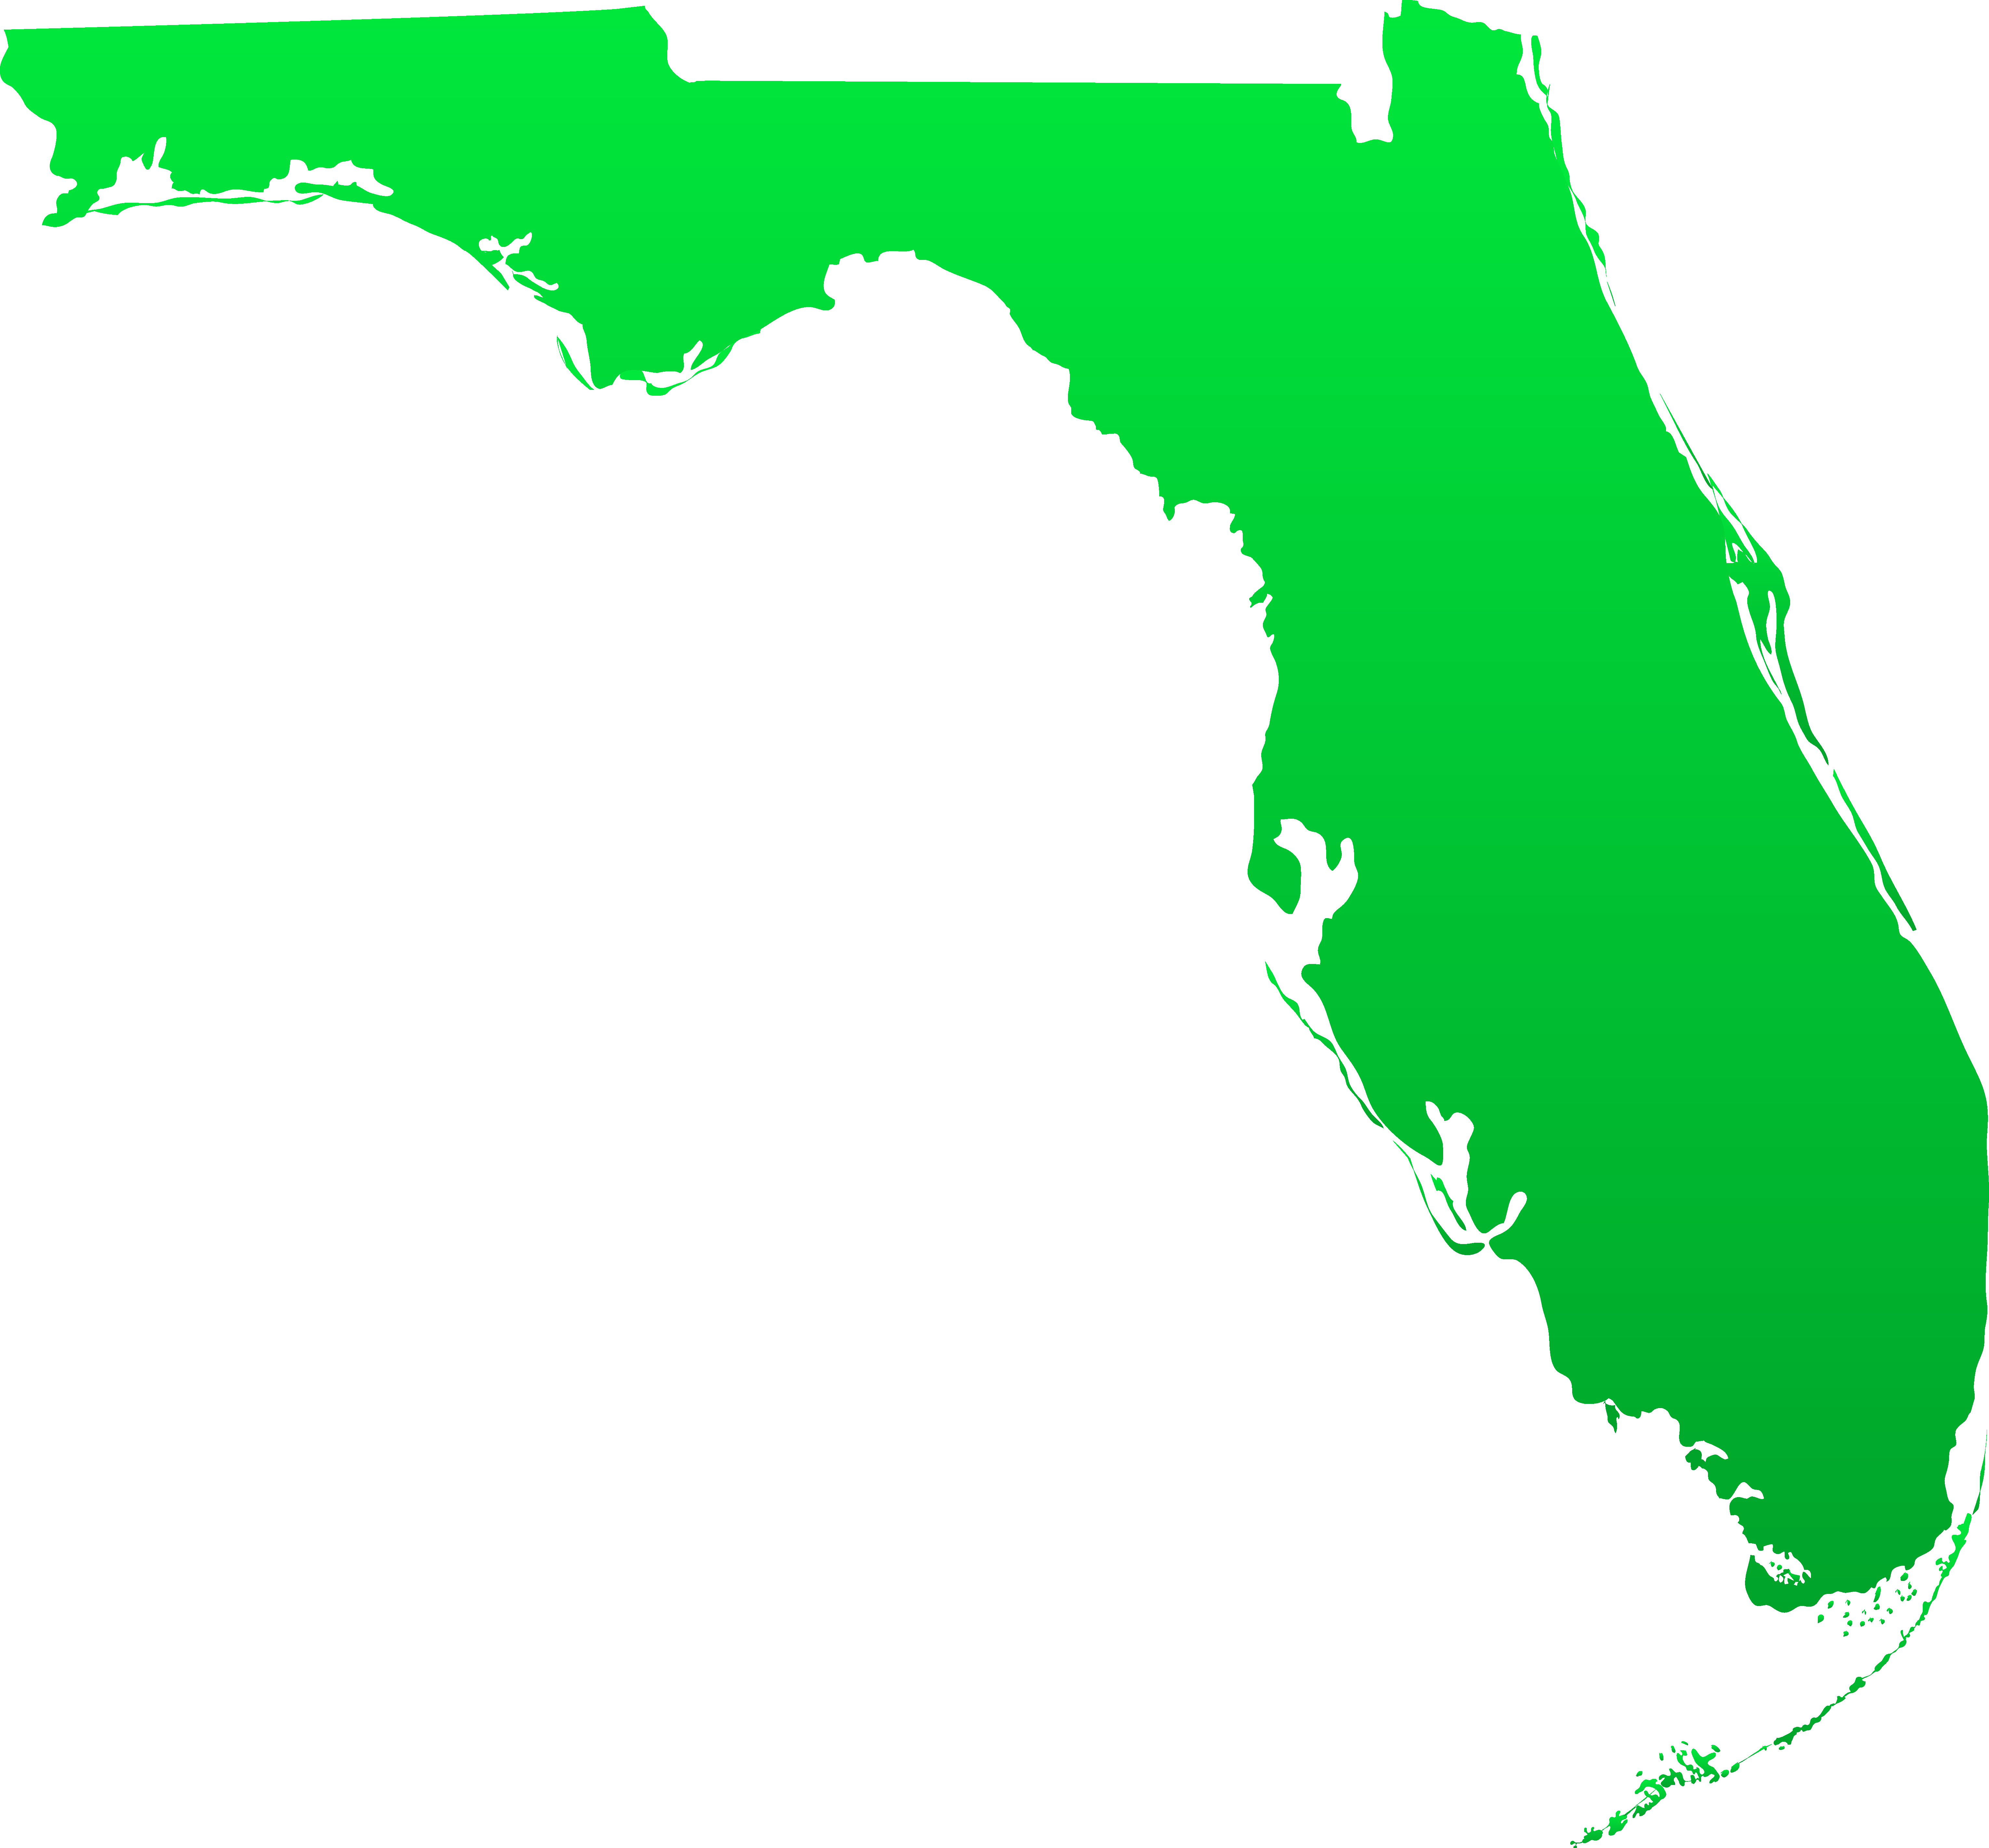 Clipart pencil map. Florida state design free